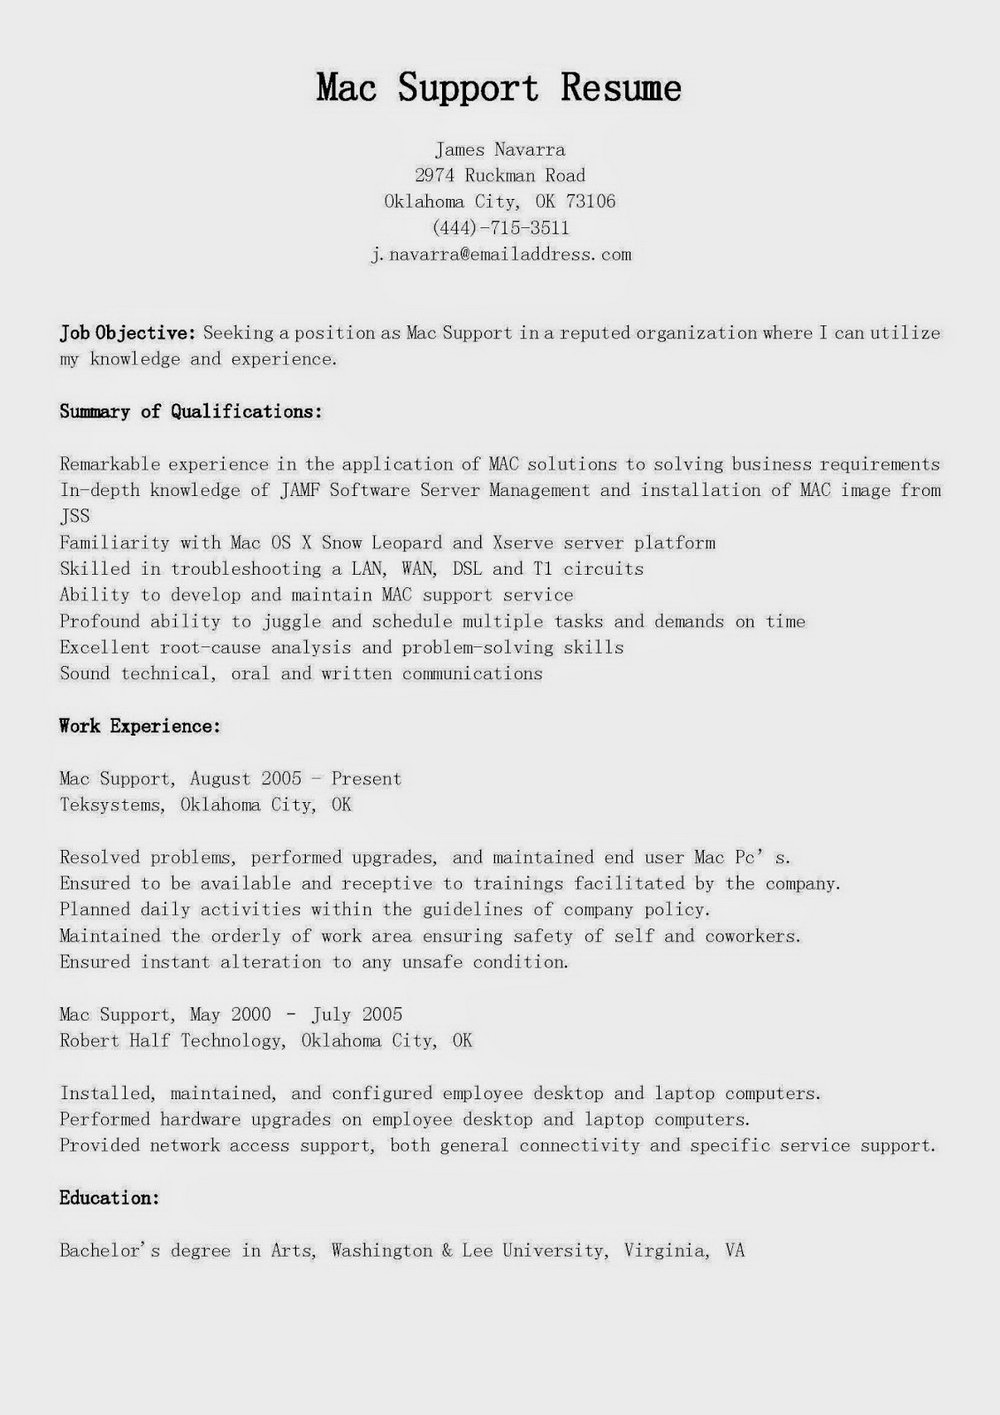 Resume Template For Macbook Pro